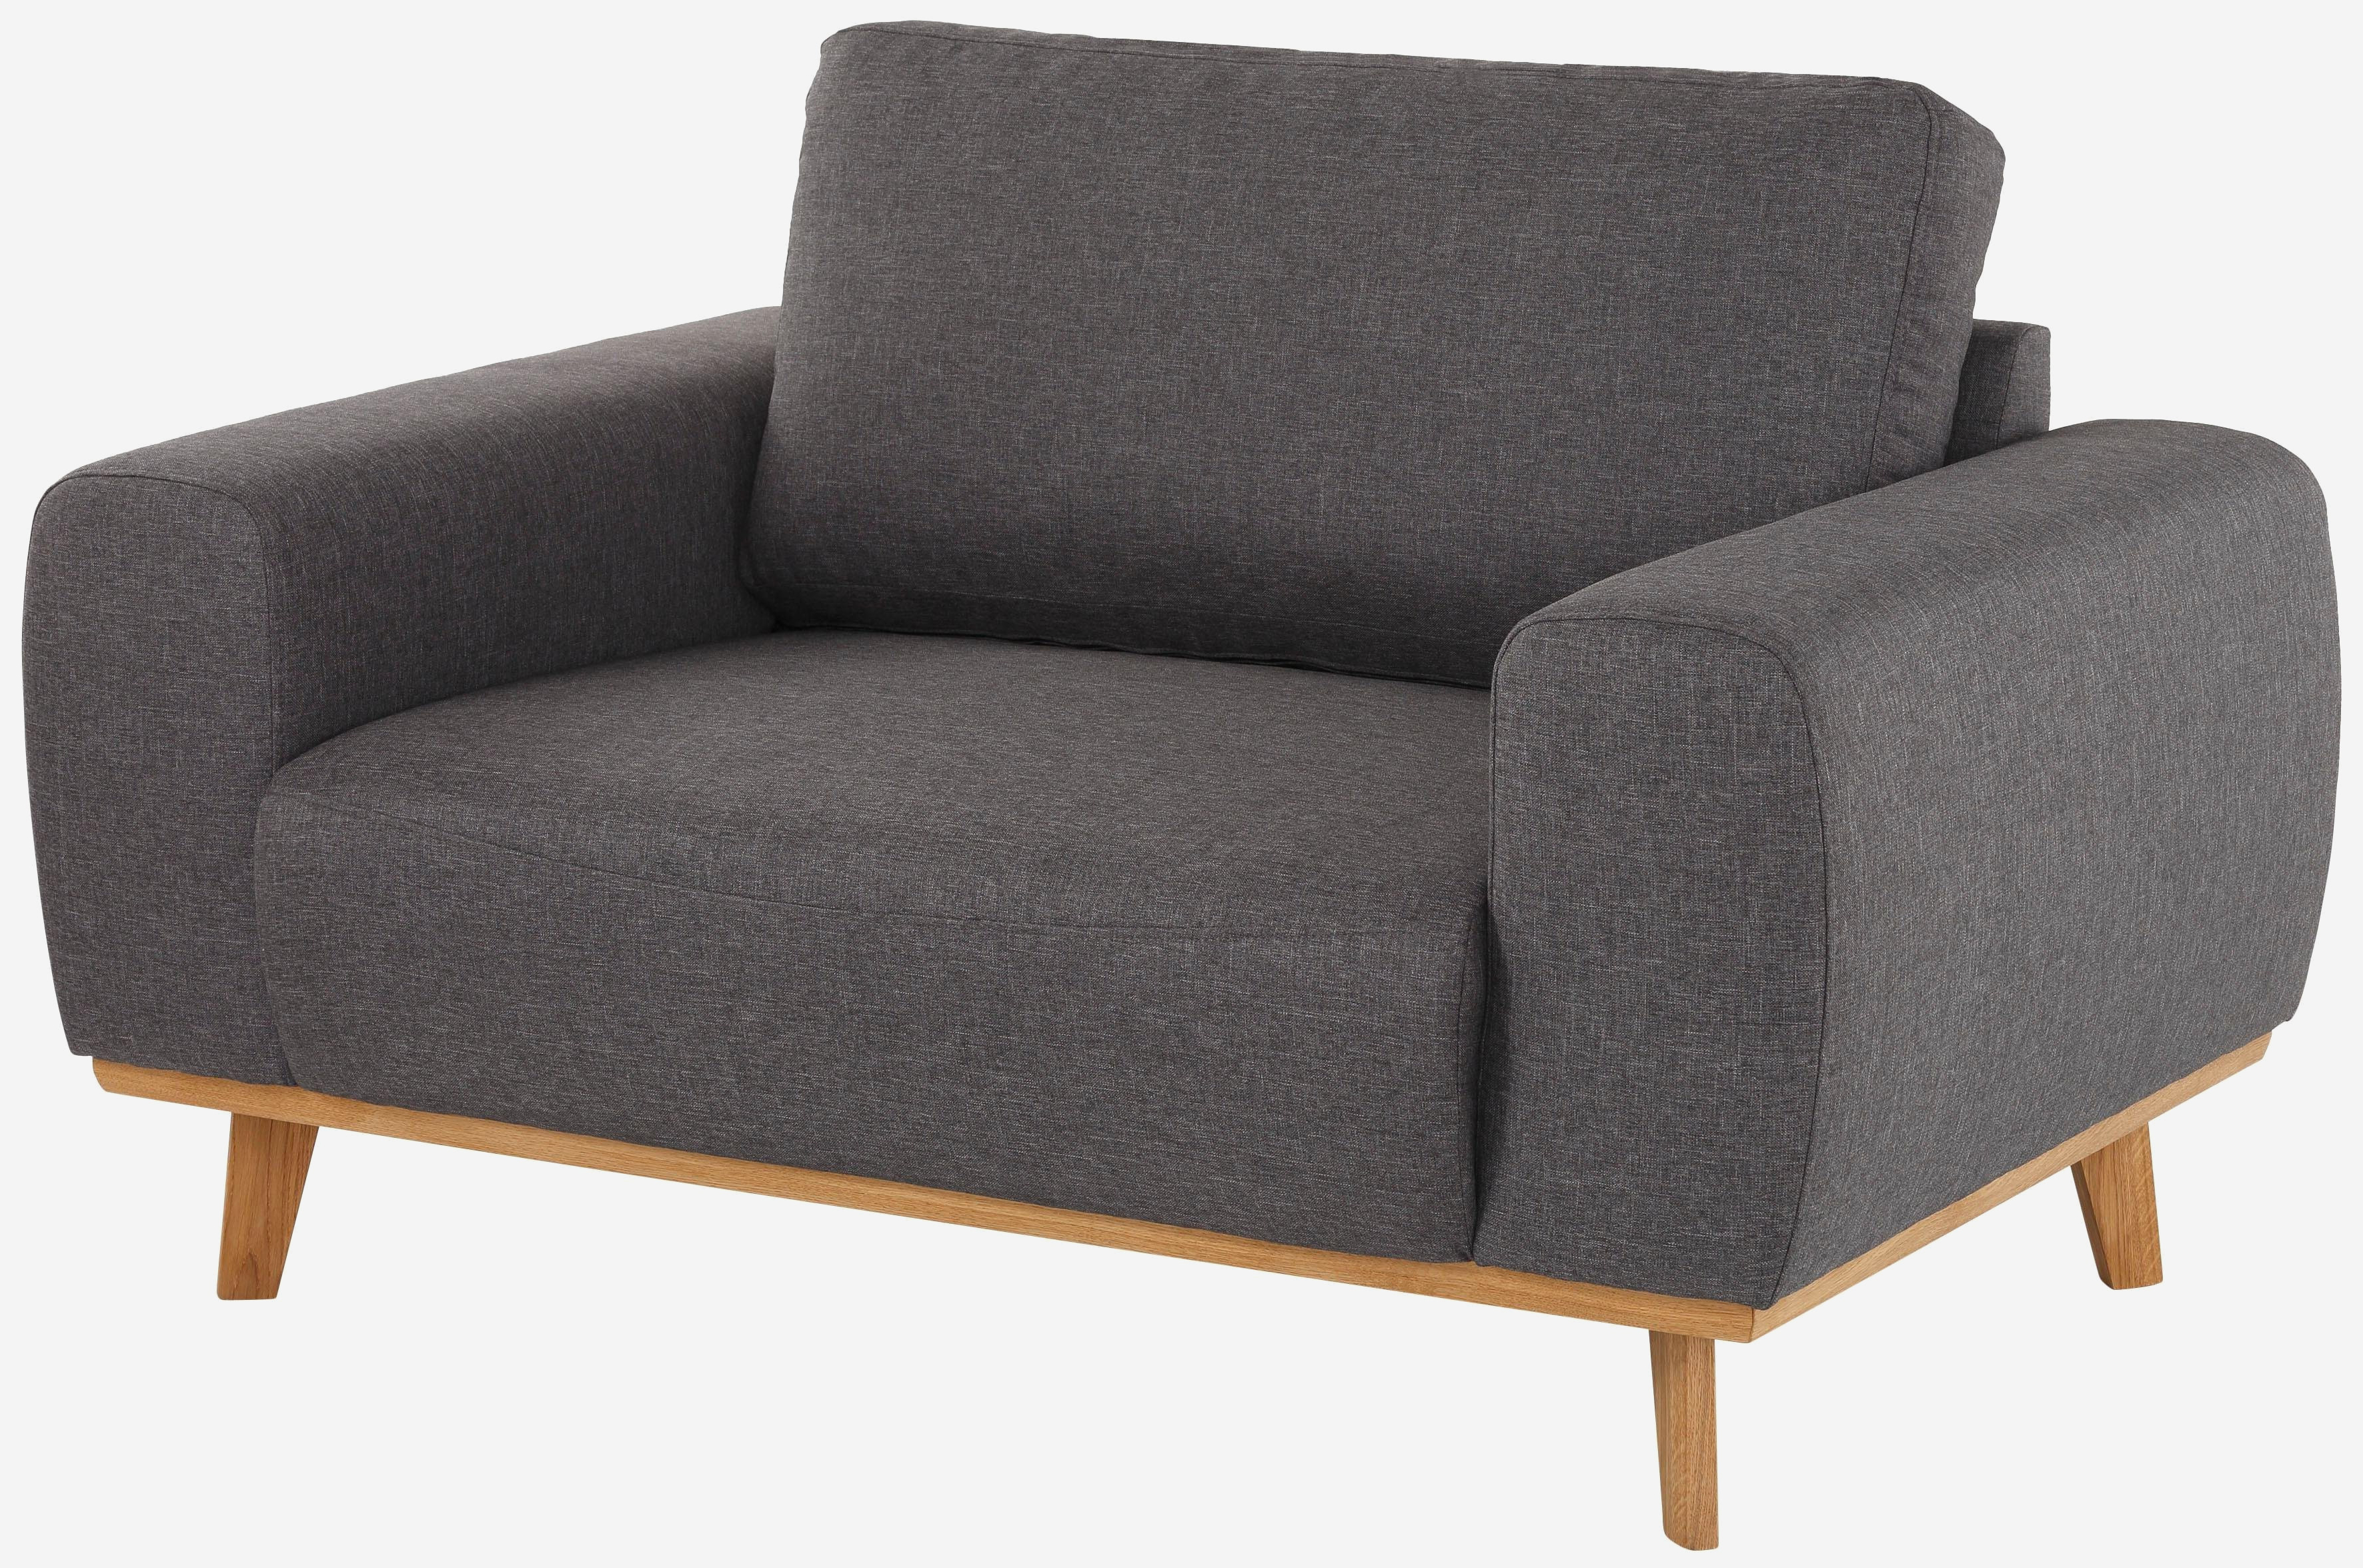 Trendy Sofa Mart Chairs Intended For Best Sofa Mart Chairs Home Style Tips Contemporary And Room Design (View 5 of 20)